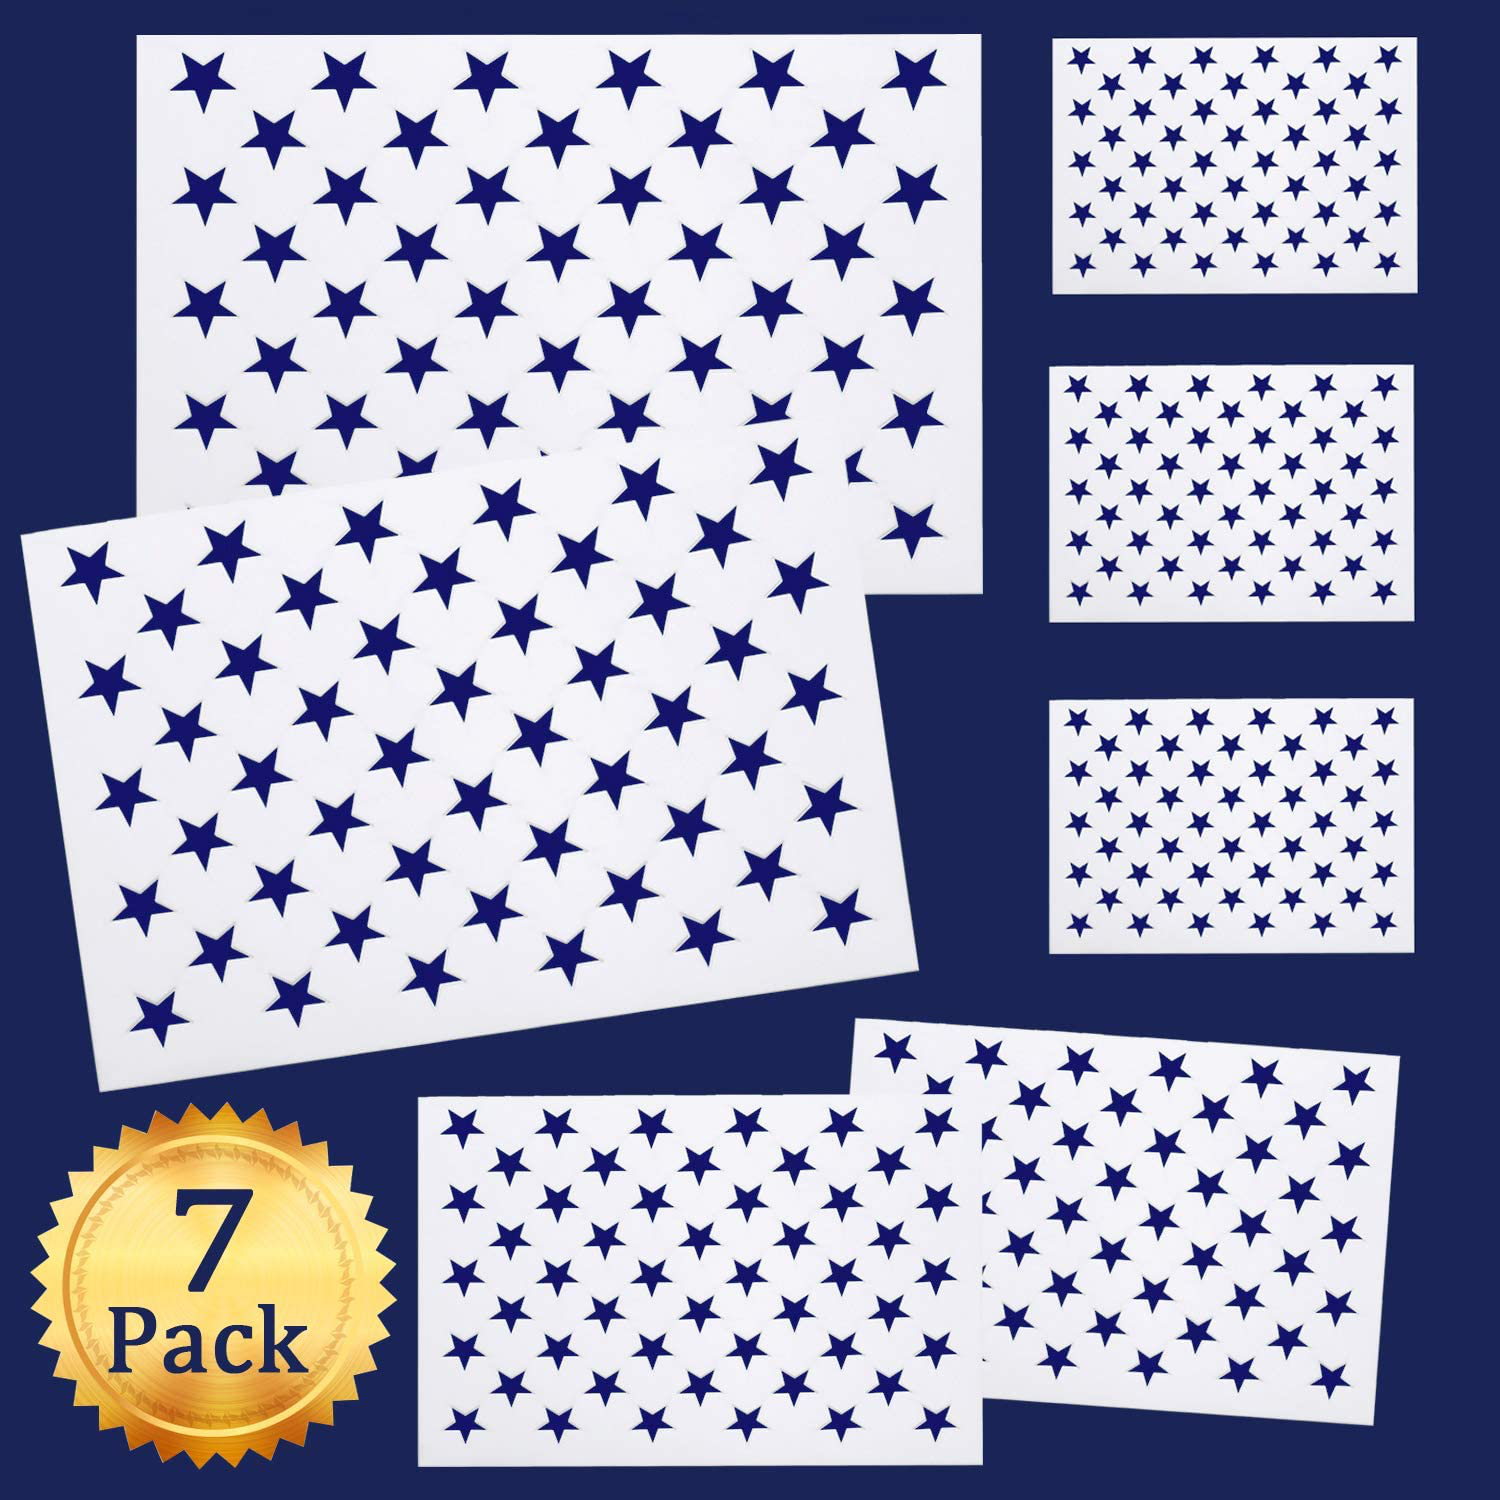 7 Pcs American Flag 50 Stars Stencil Template for Painting on Wood Fabric Paper